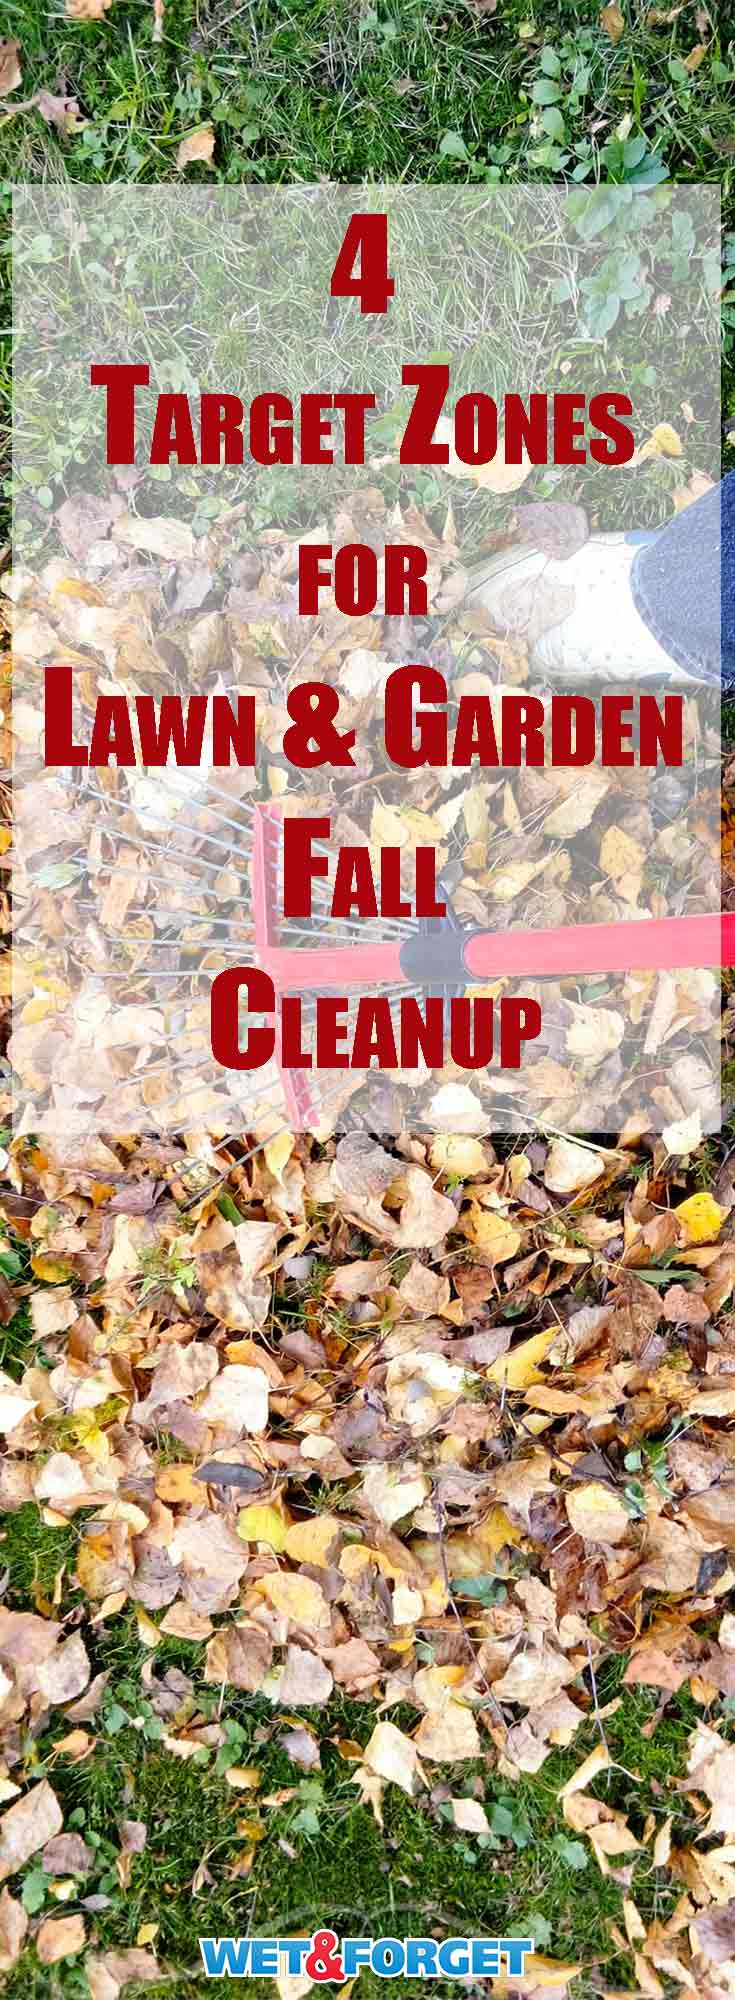 As the days become shorter and the leaves change colors it's time to start your fall clean up. A good fall cleanup will give you a head start in making your lawn and garden the best they can be.